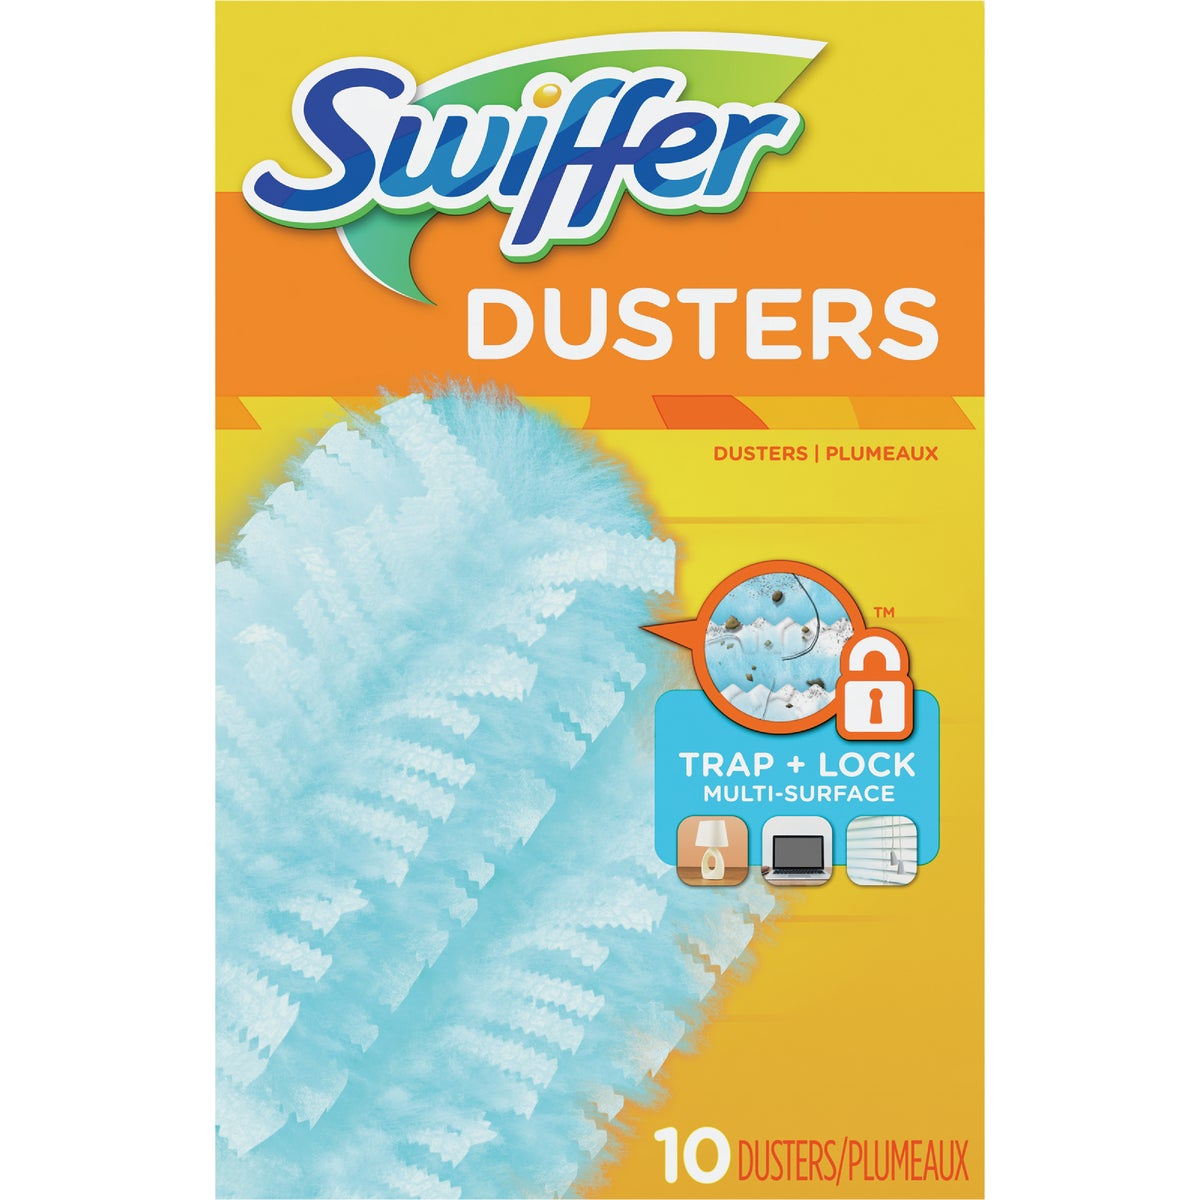 SWIFFER DUSTER REFILL - 41767 by Procter & Gamble